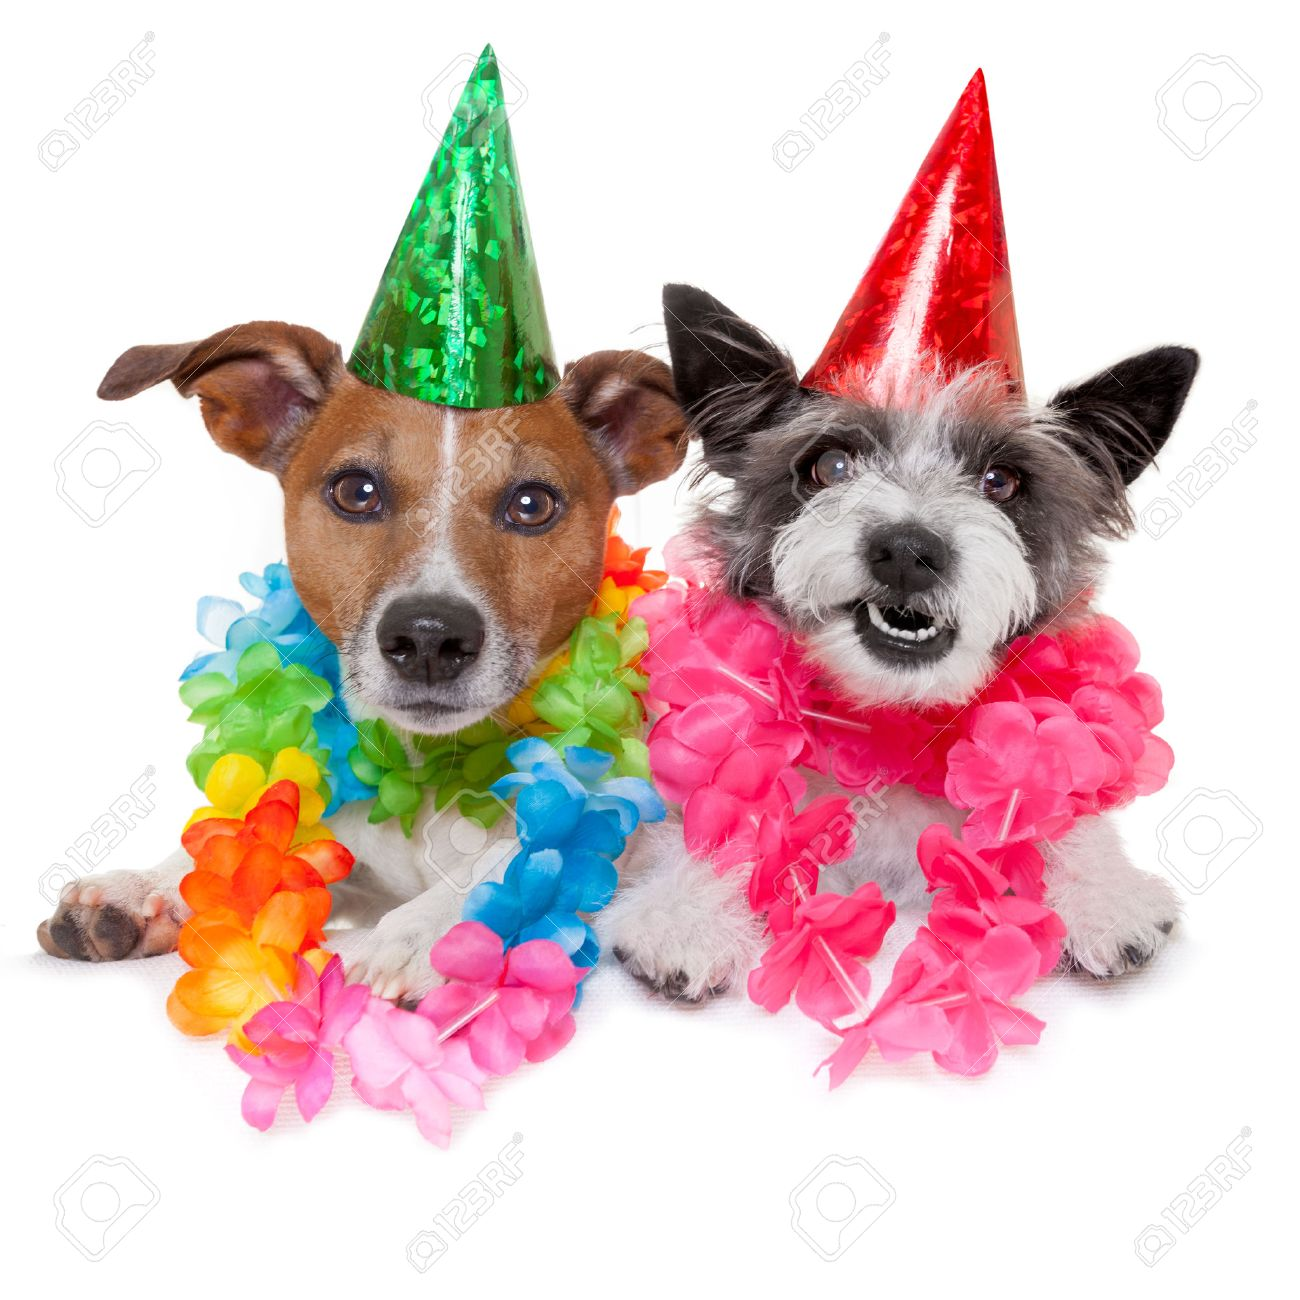 Two Funny Birthday Dogs Celebrating Close Together As A Couple Stock